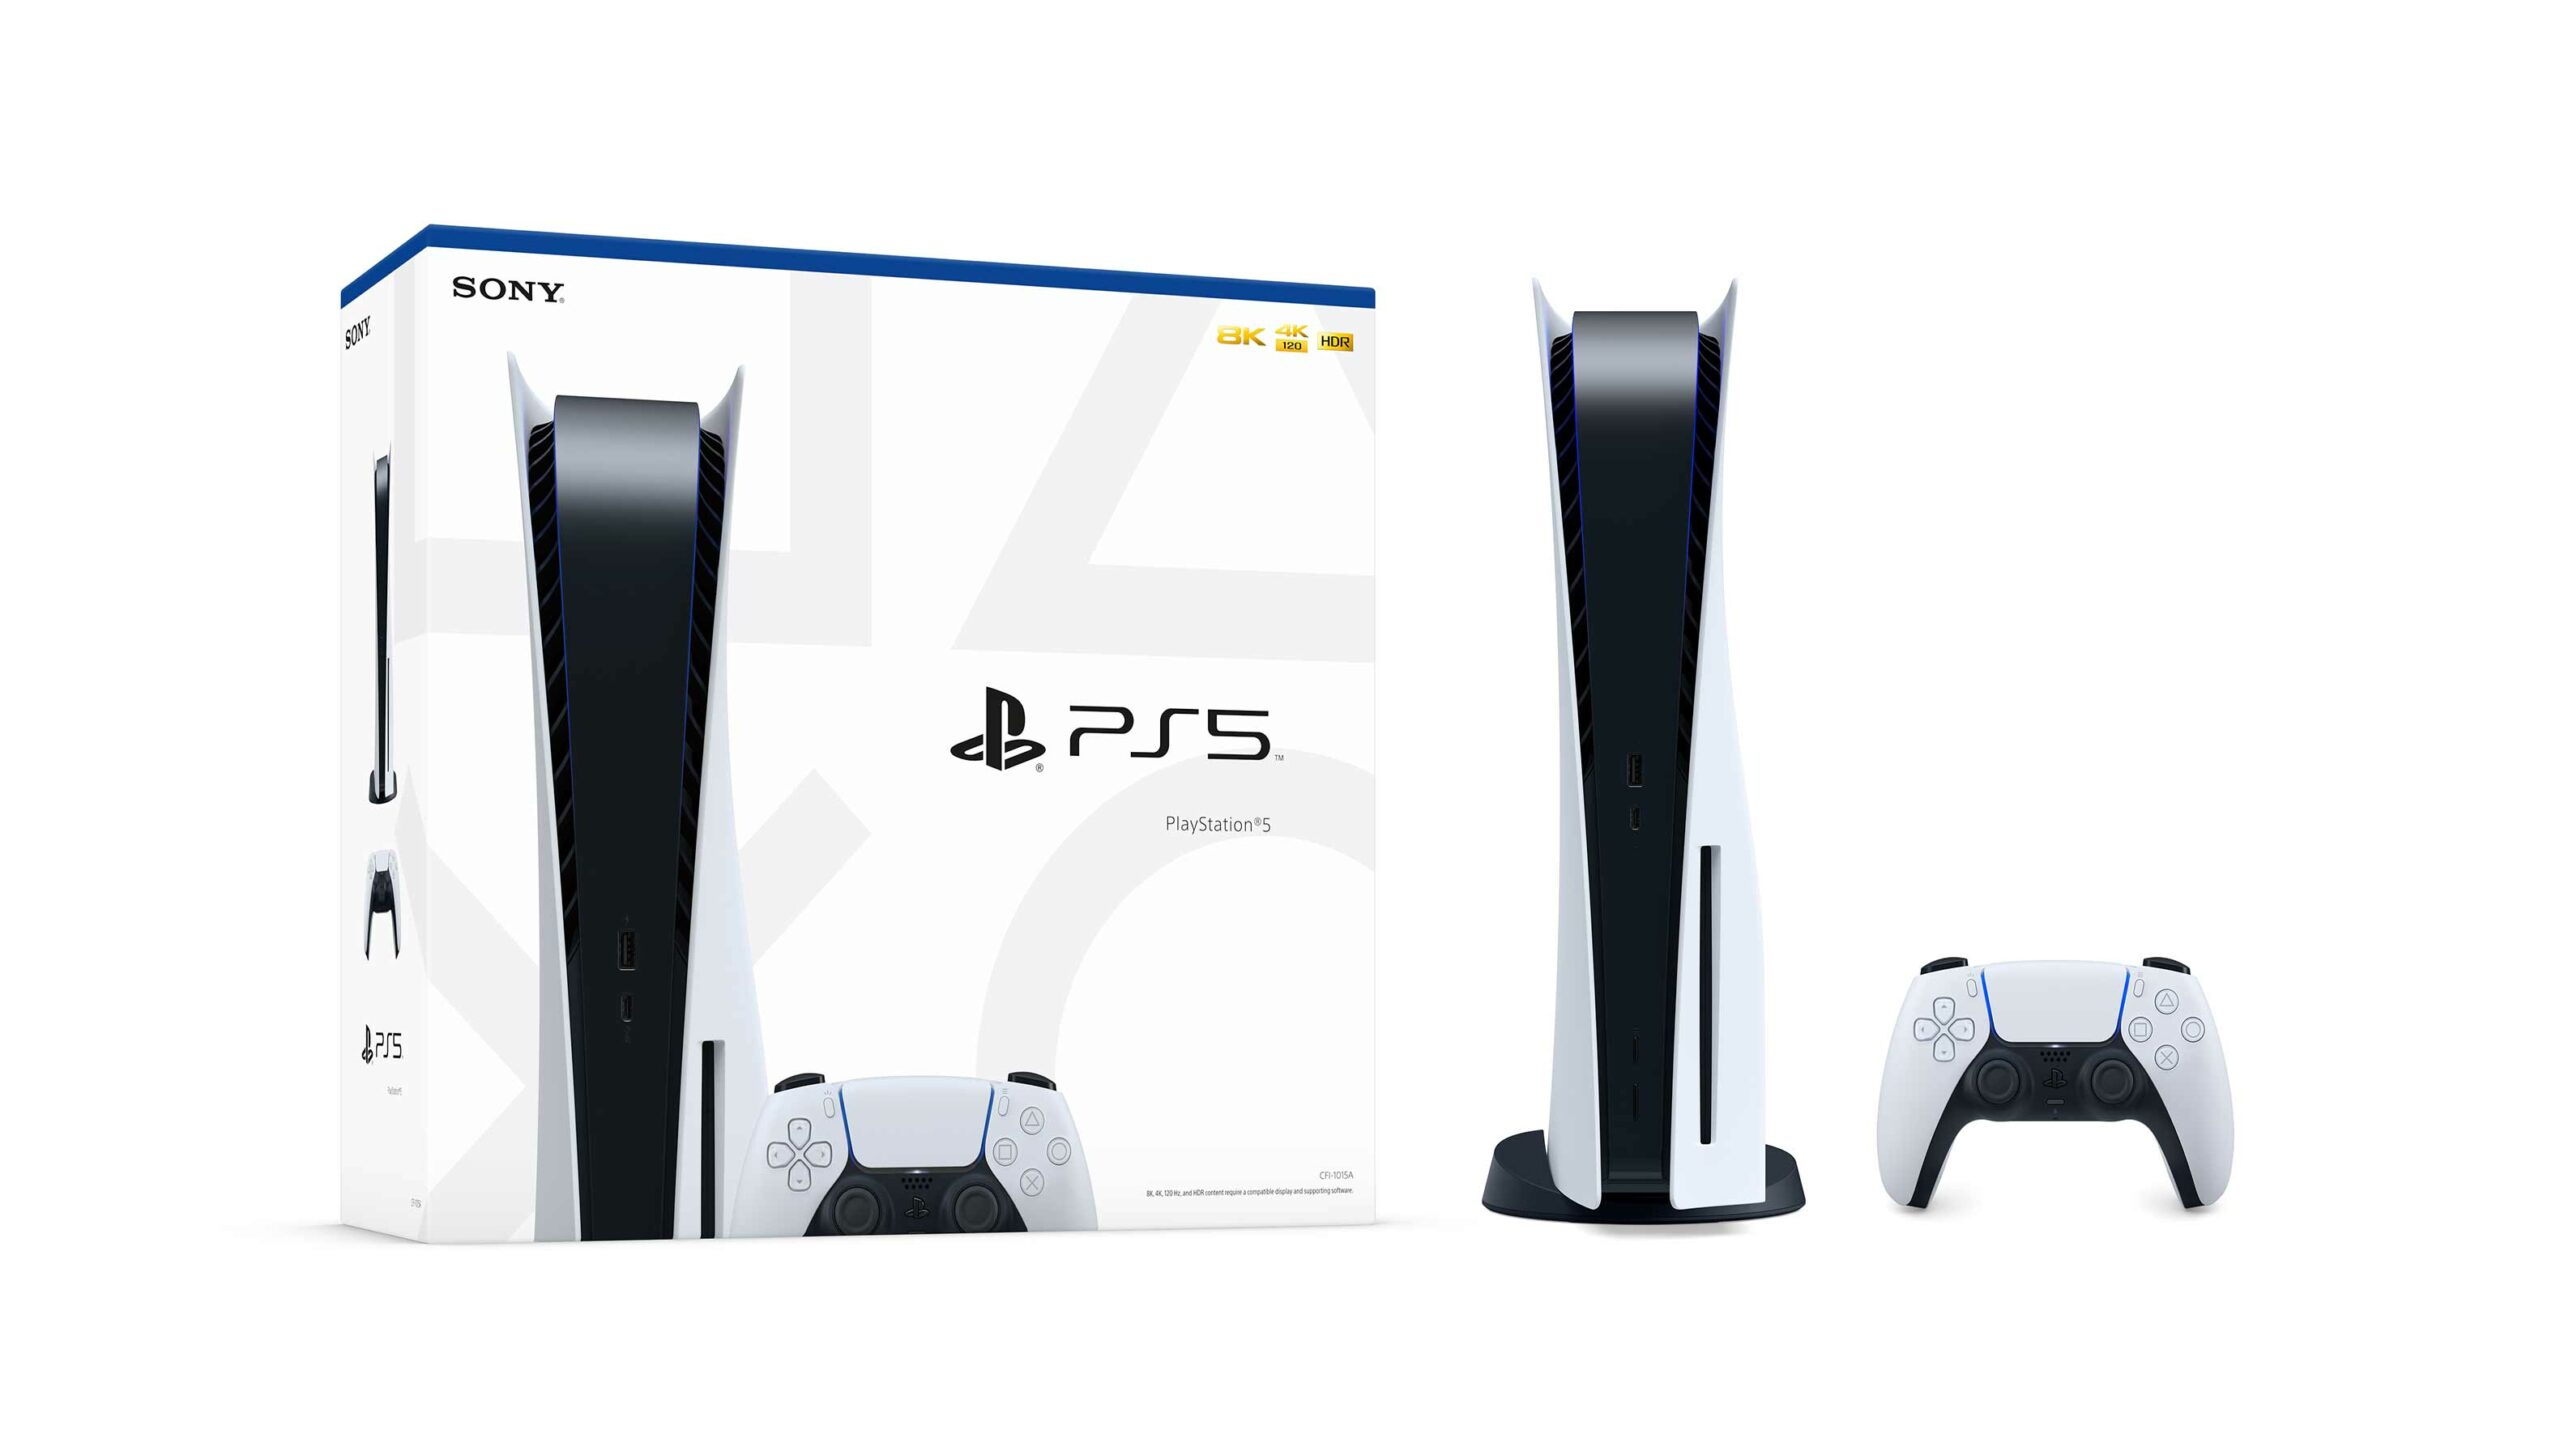 PlayStation 5 box